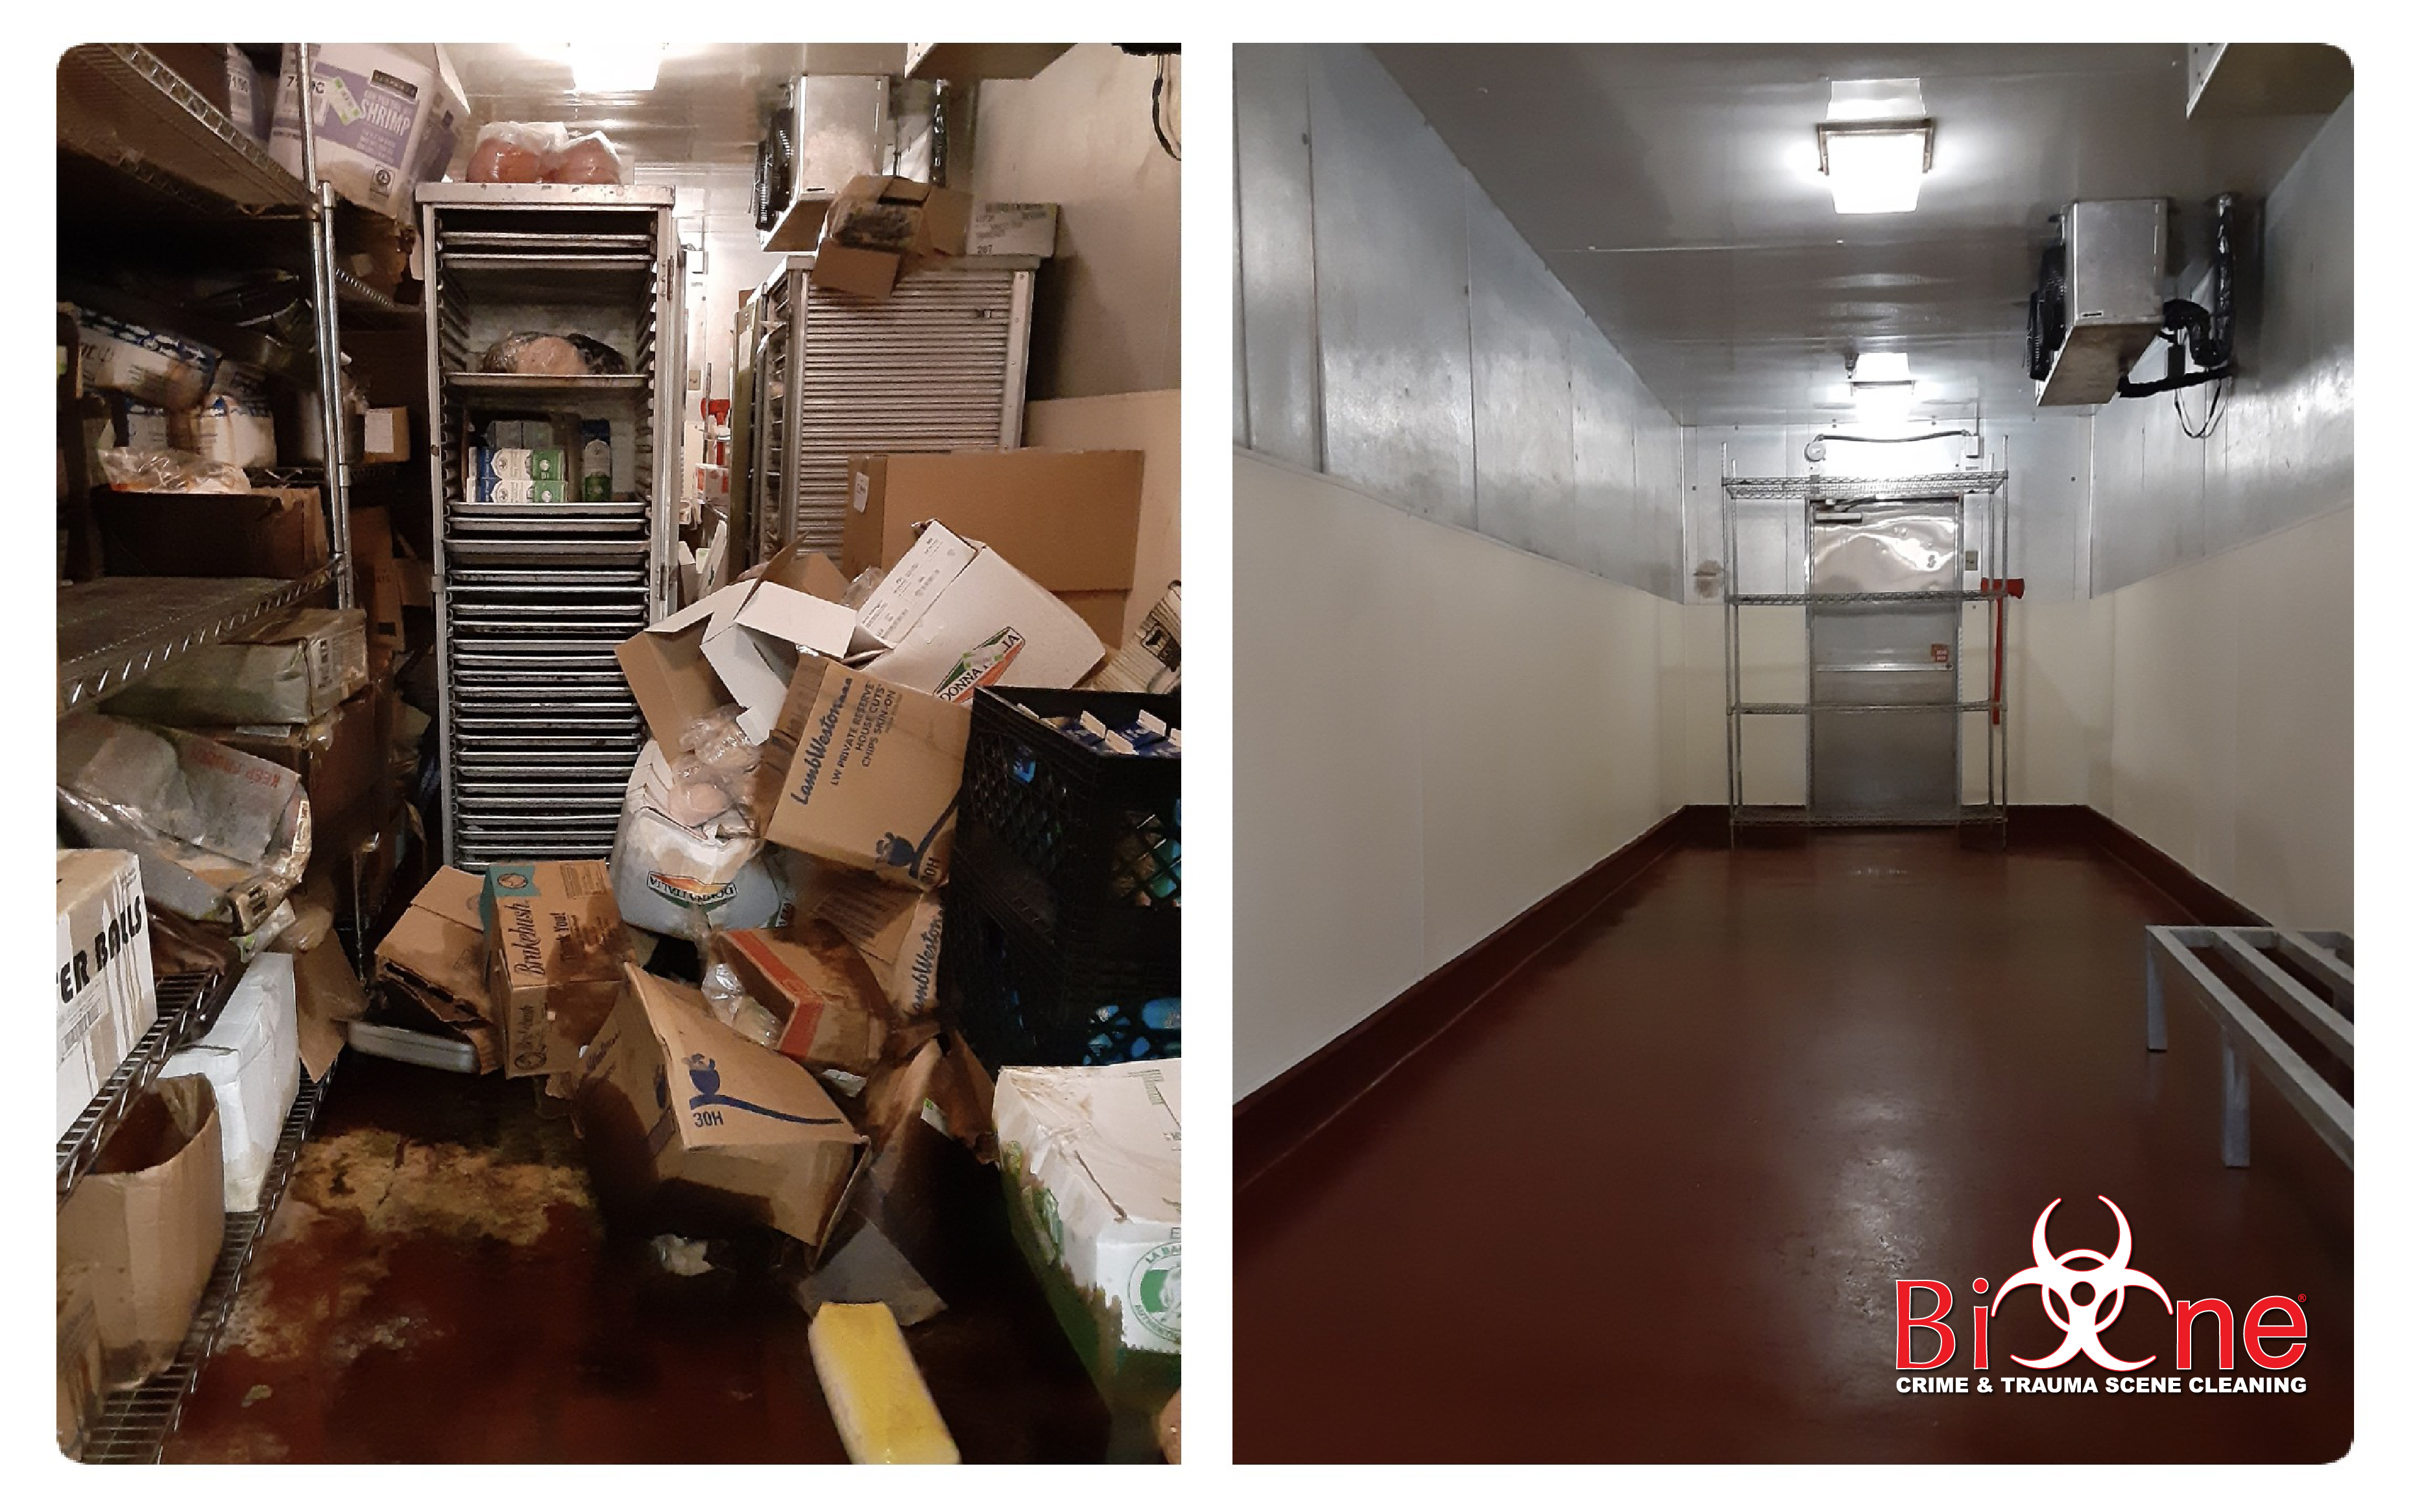 """<img src=""""https://s3.amazonaws.com/news-img/client_8346/8346_1595561459783-Before___After_Freezer.jpg"""" alt = """"Refrigerator and Freezer with rotten & spoiled food that needs cleaned out"""">"""